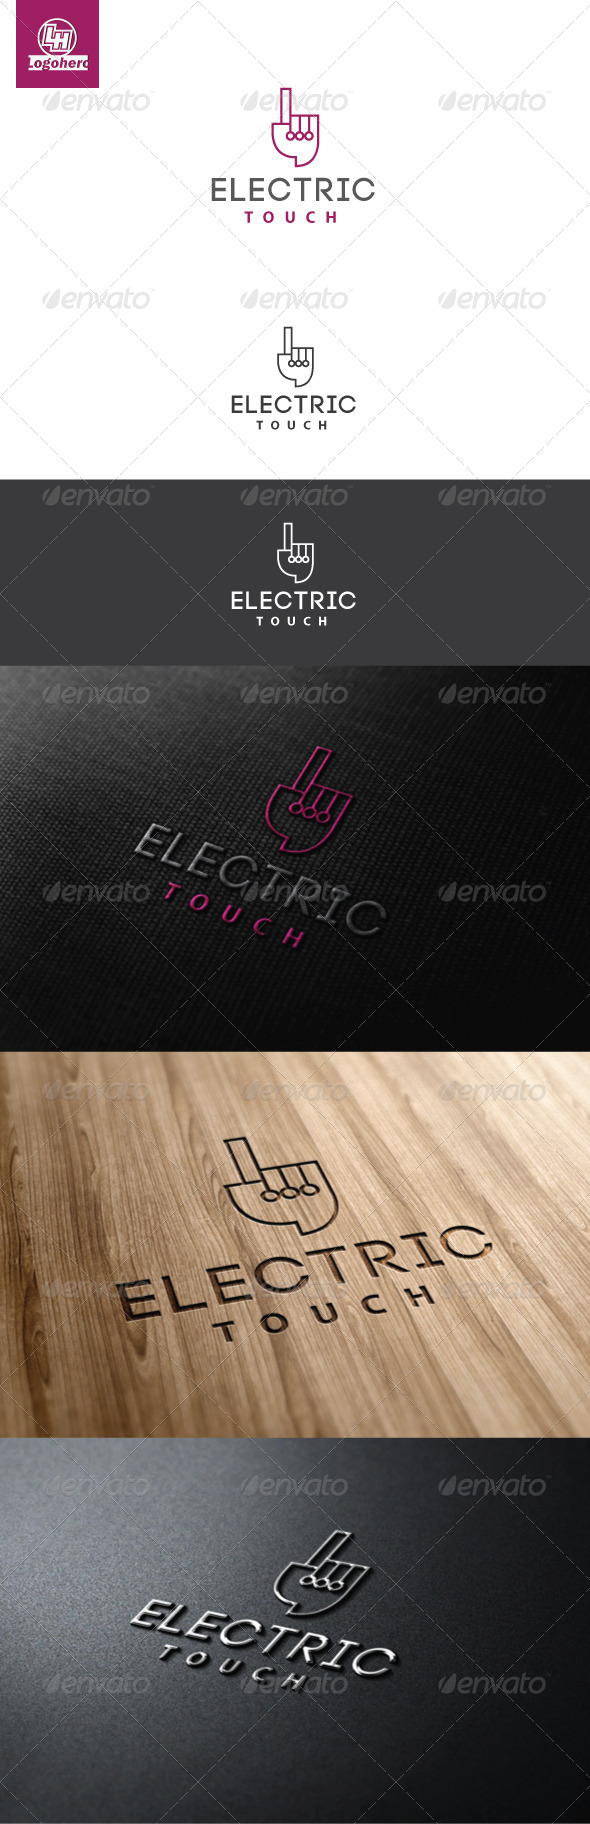 GraphicRiver Electric Touch Logo Template 4608241